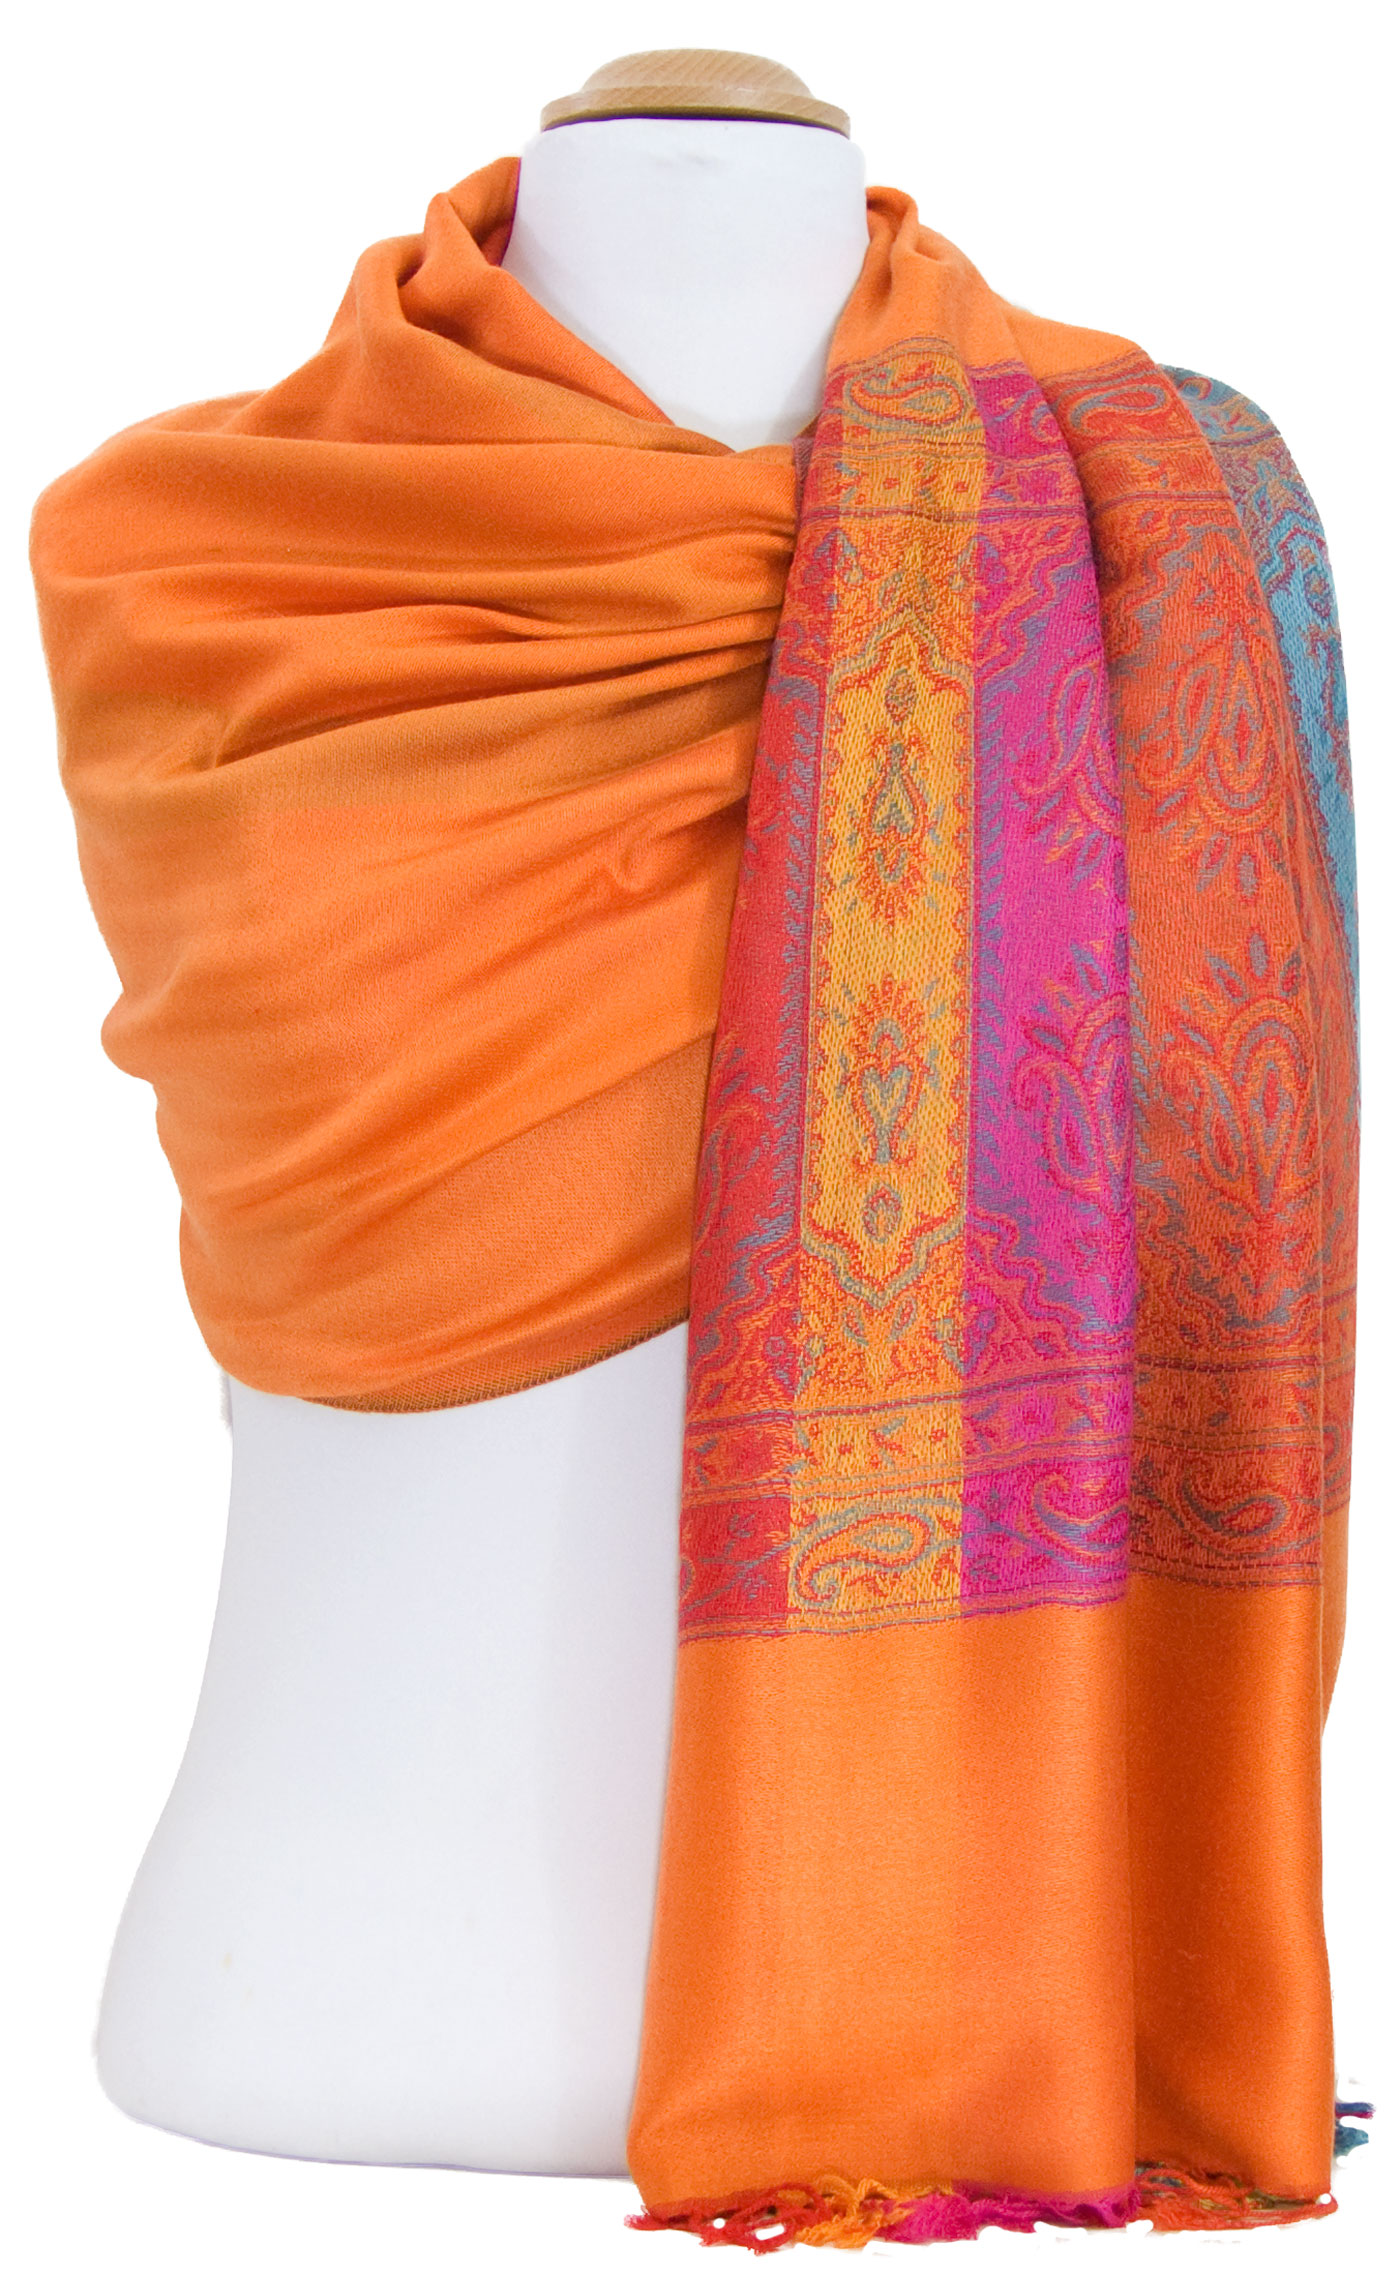 Etole pashmina orange tissage multicolore